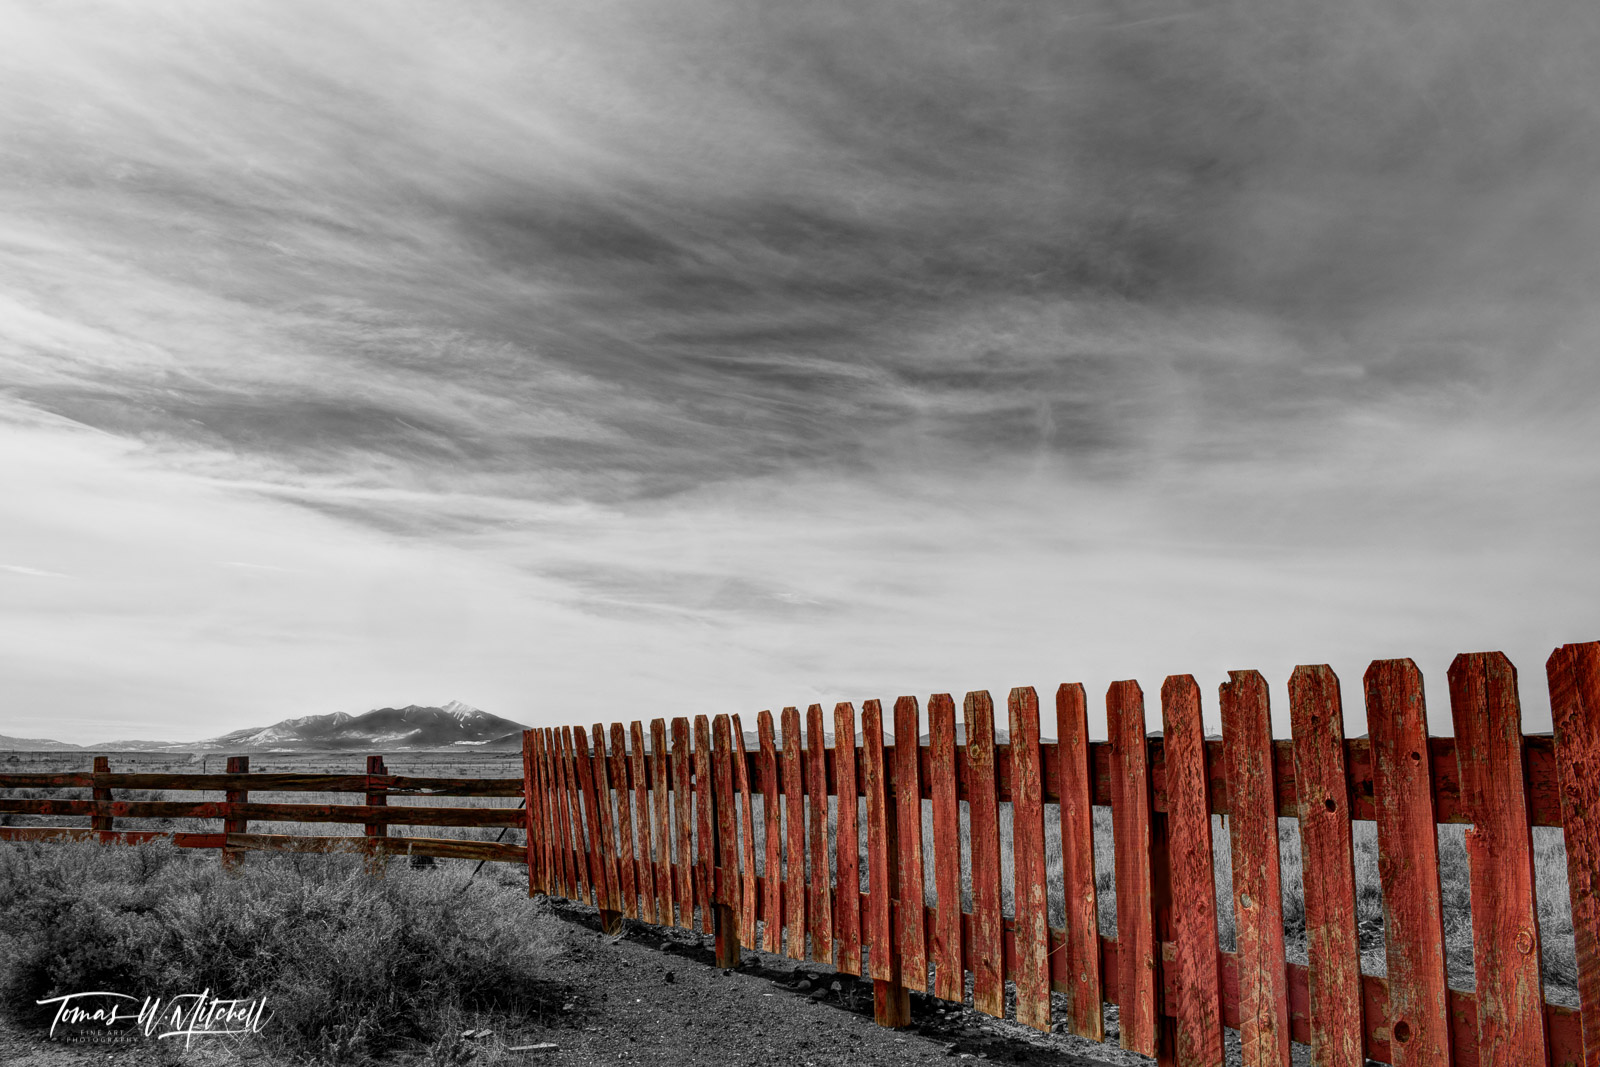 limited edition, fine art, prints, gray mountain, arizona, wauneta trading post, photograph, clouds, soft light, old fence, kachina peaks, rustic, fence, red, peaks, kachinas, color, black and white , photo